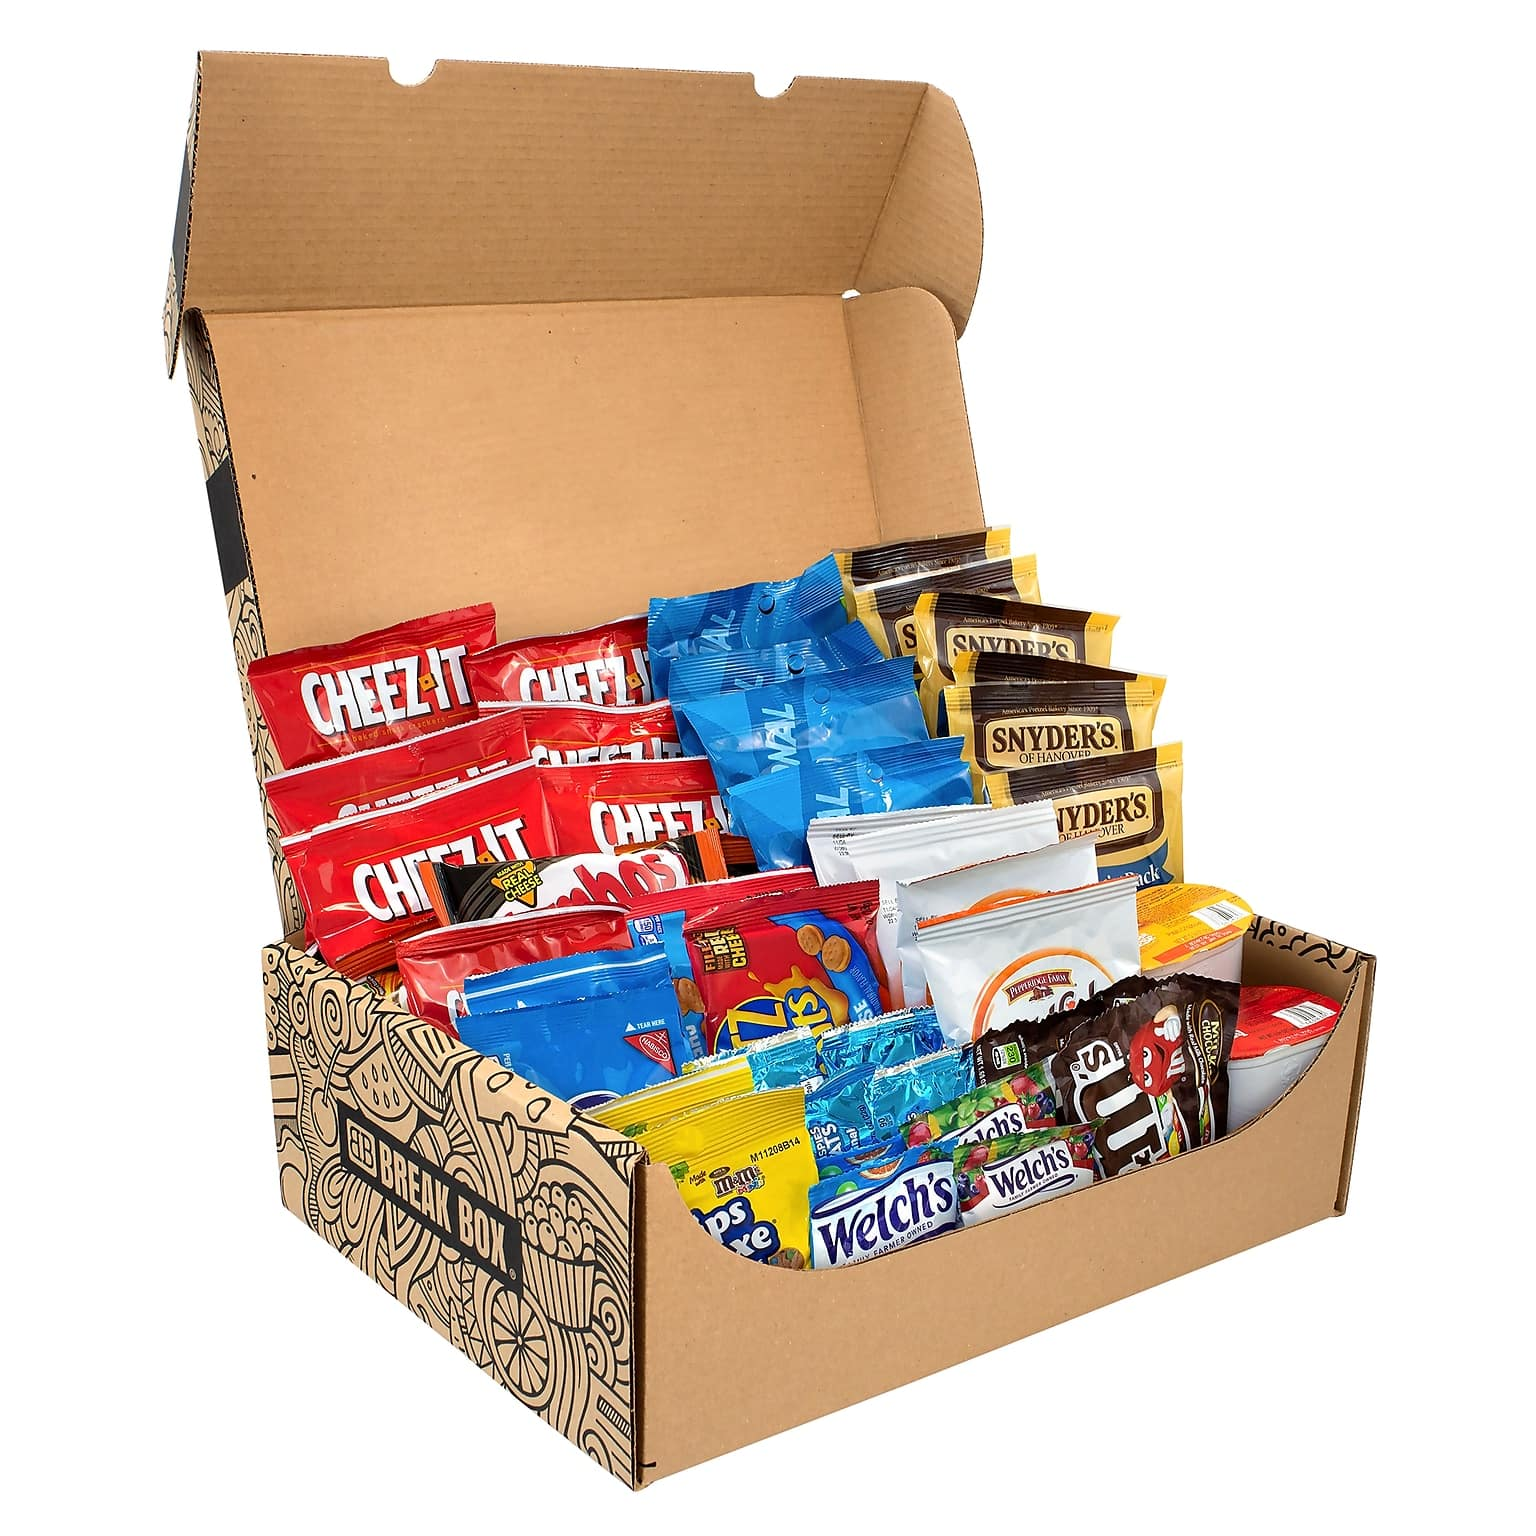 55-Count Break Box Dorm Room Survival Snack Mix (Assorted) $24.15 + Free Shipping & More